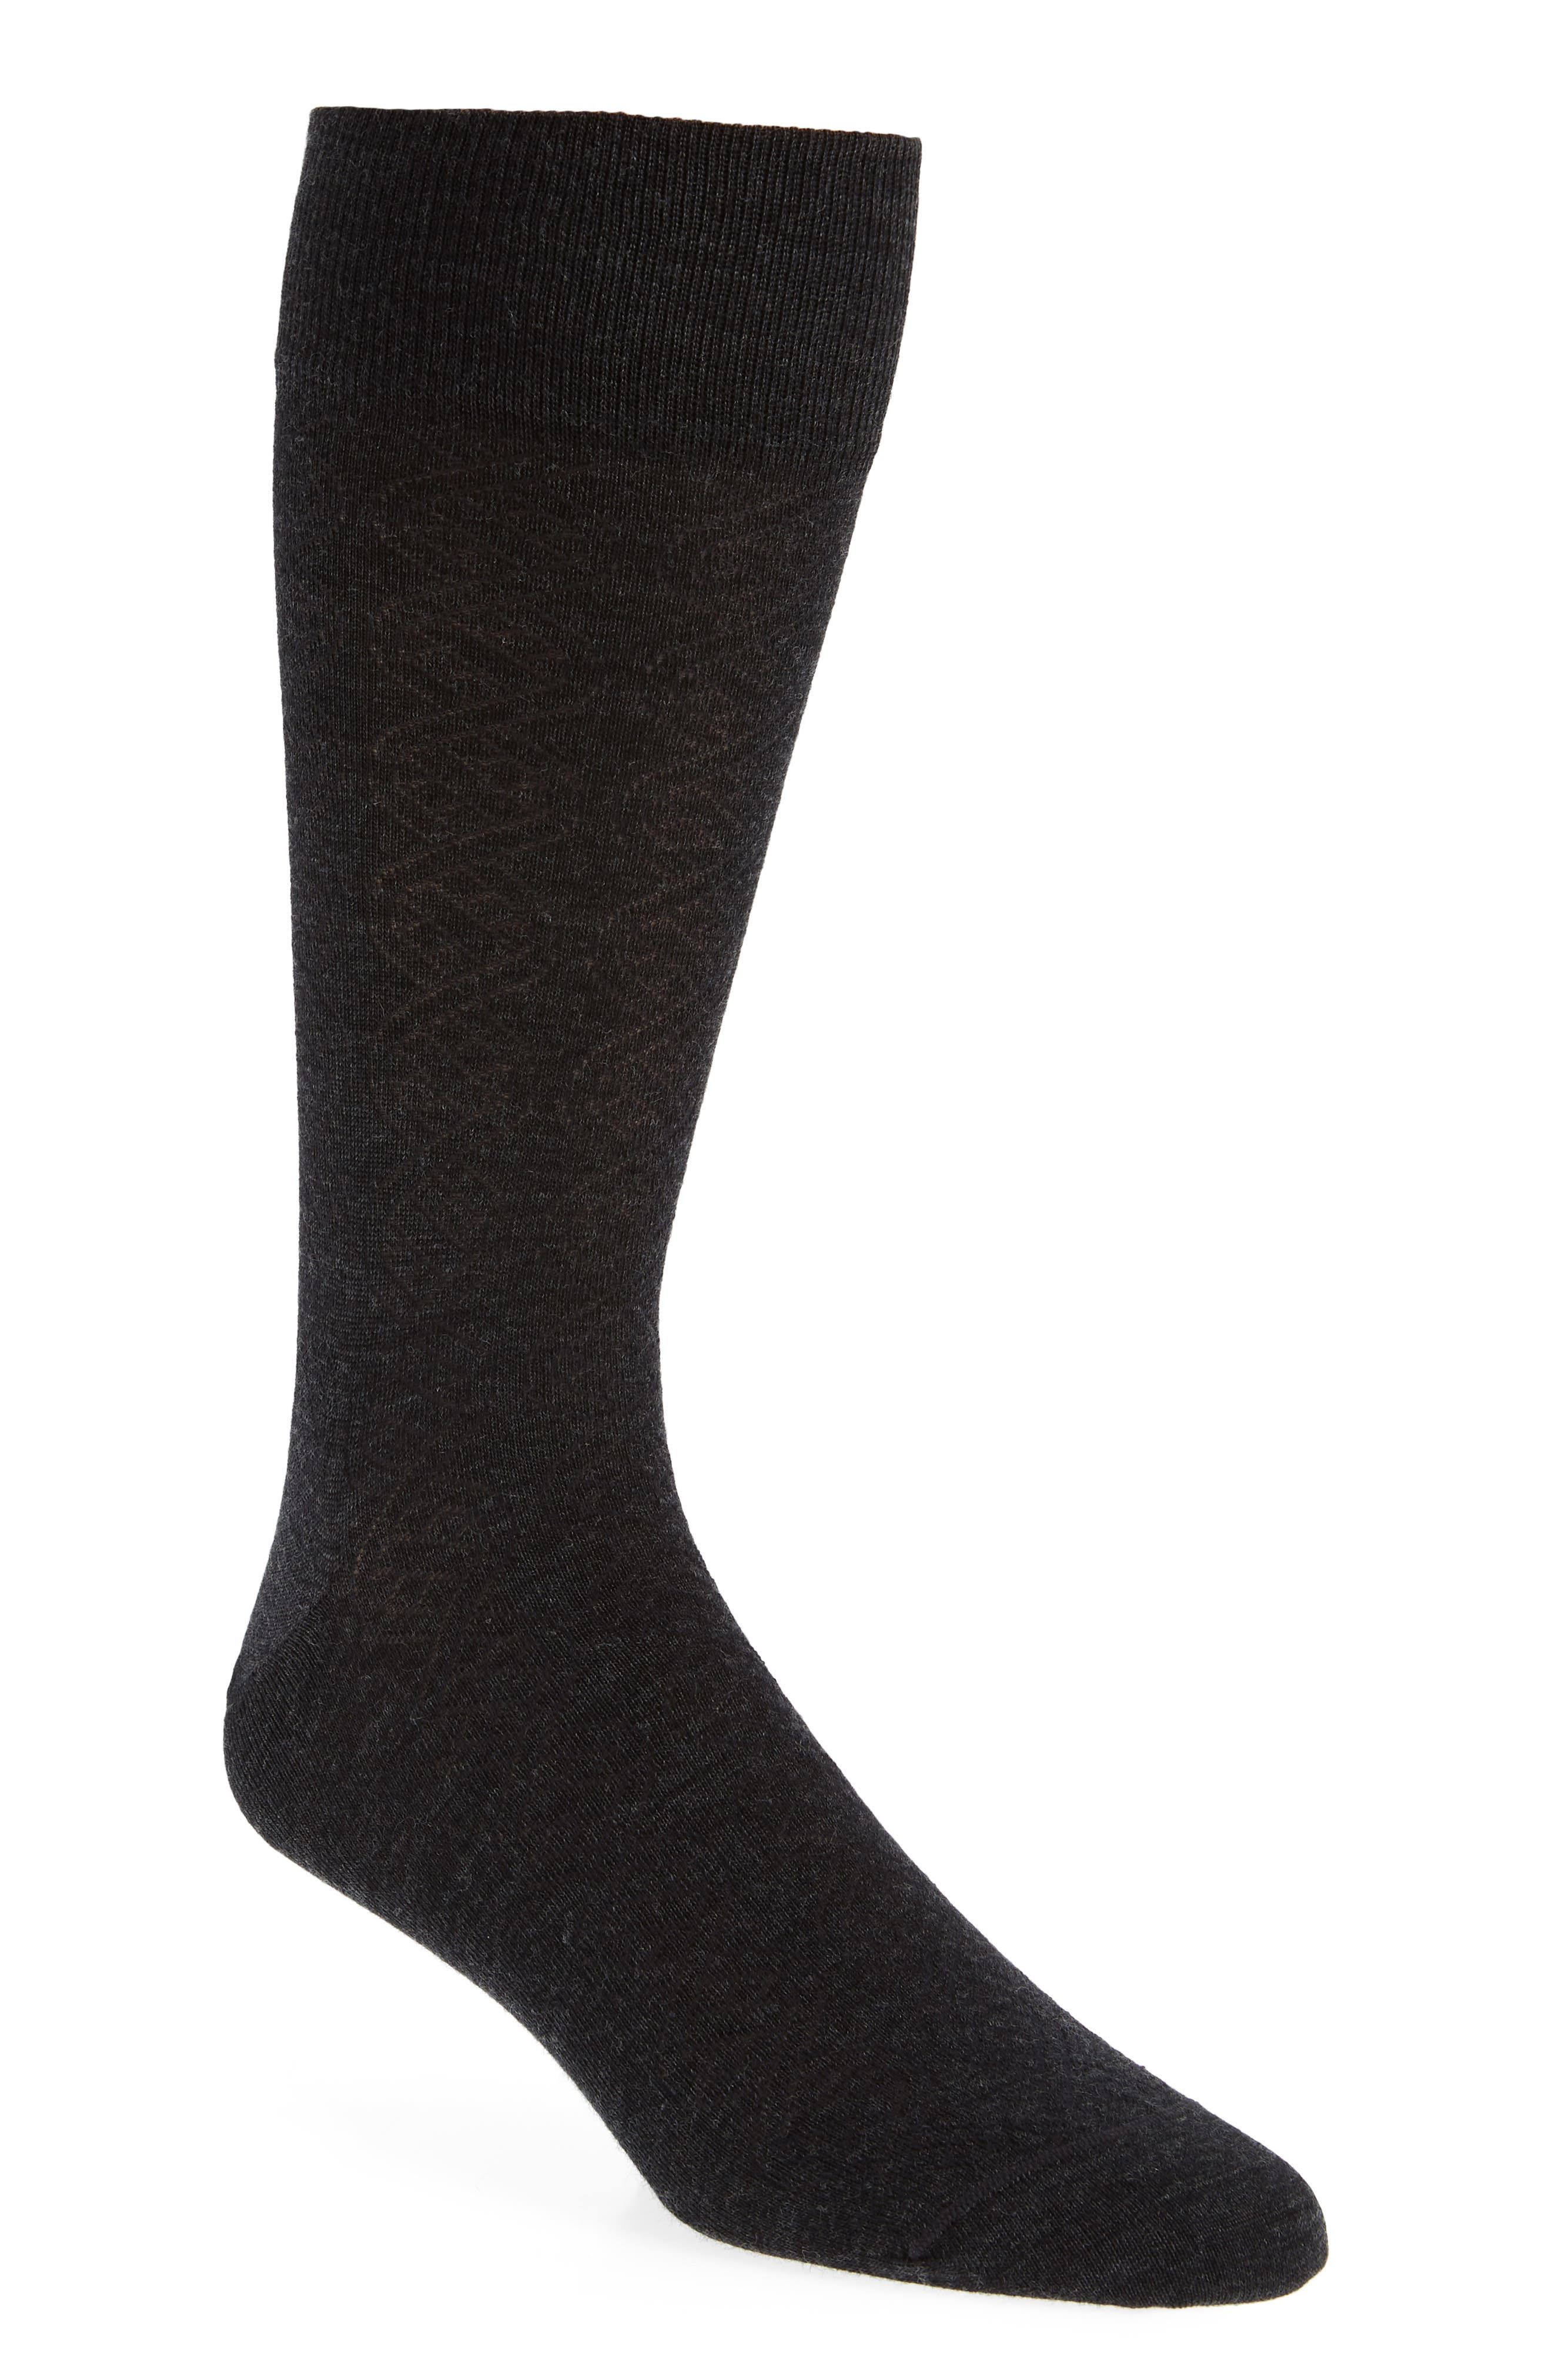 Cable Merino Wool Blend Socks,                         Main,                         color, CHARCOAL HEATHER